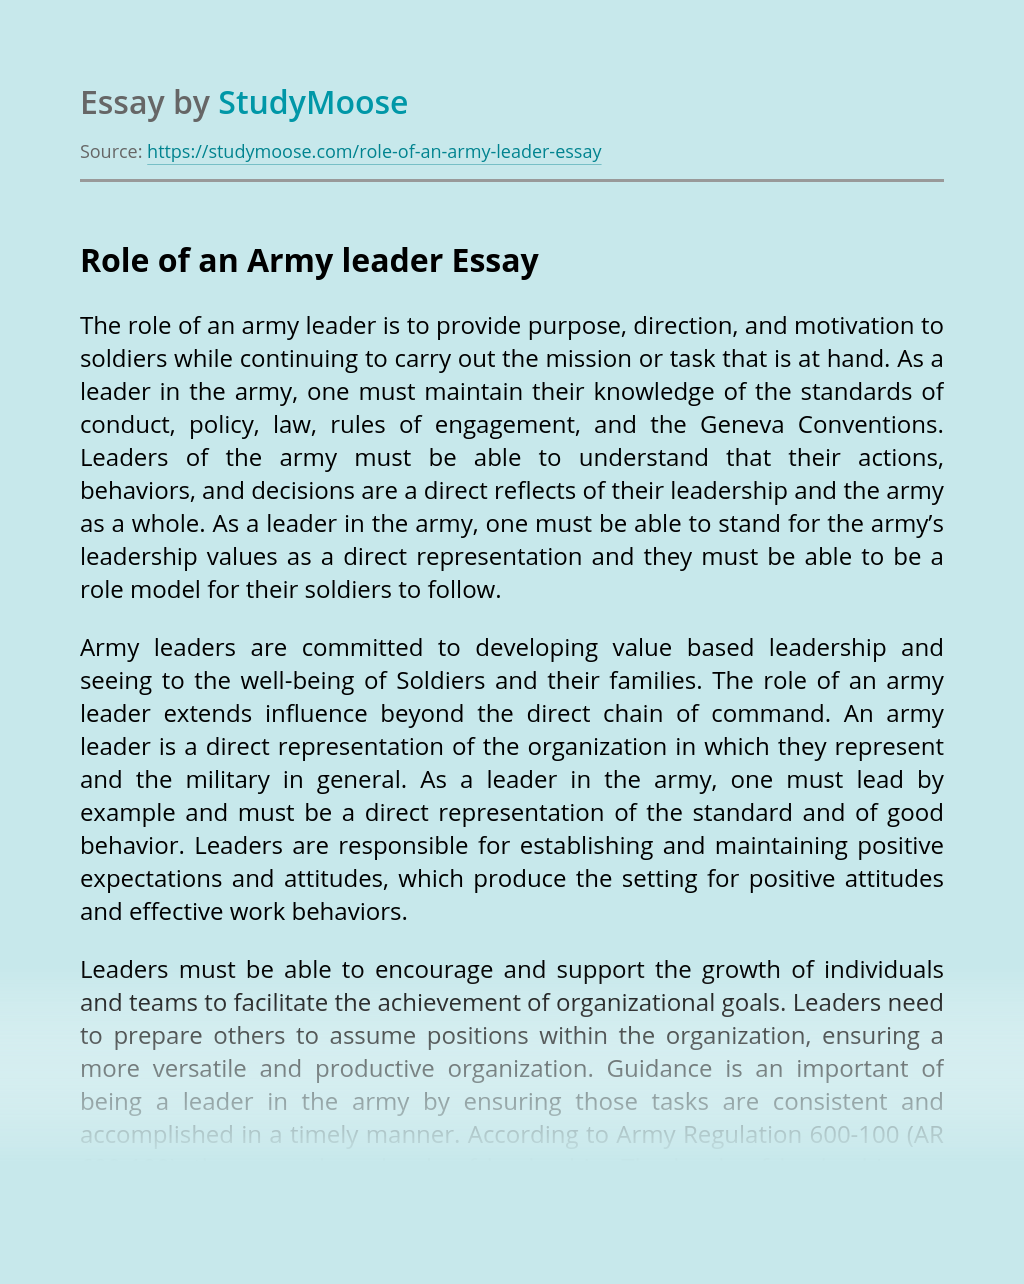 Role of an Army leader